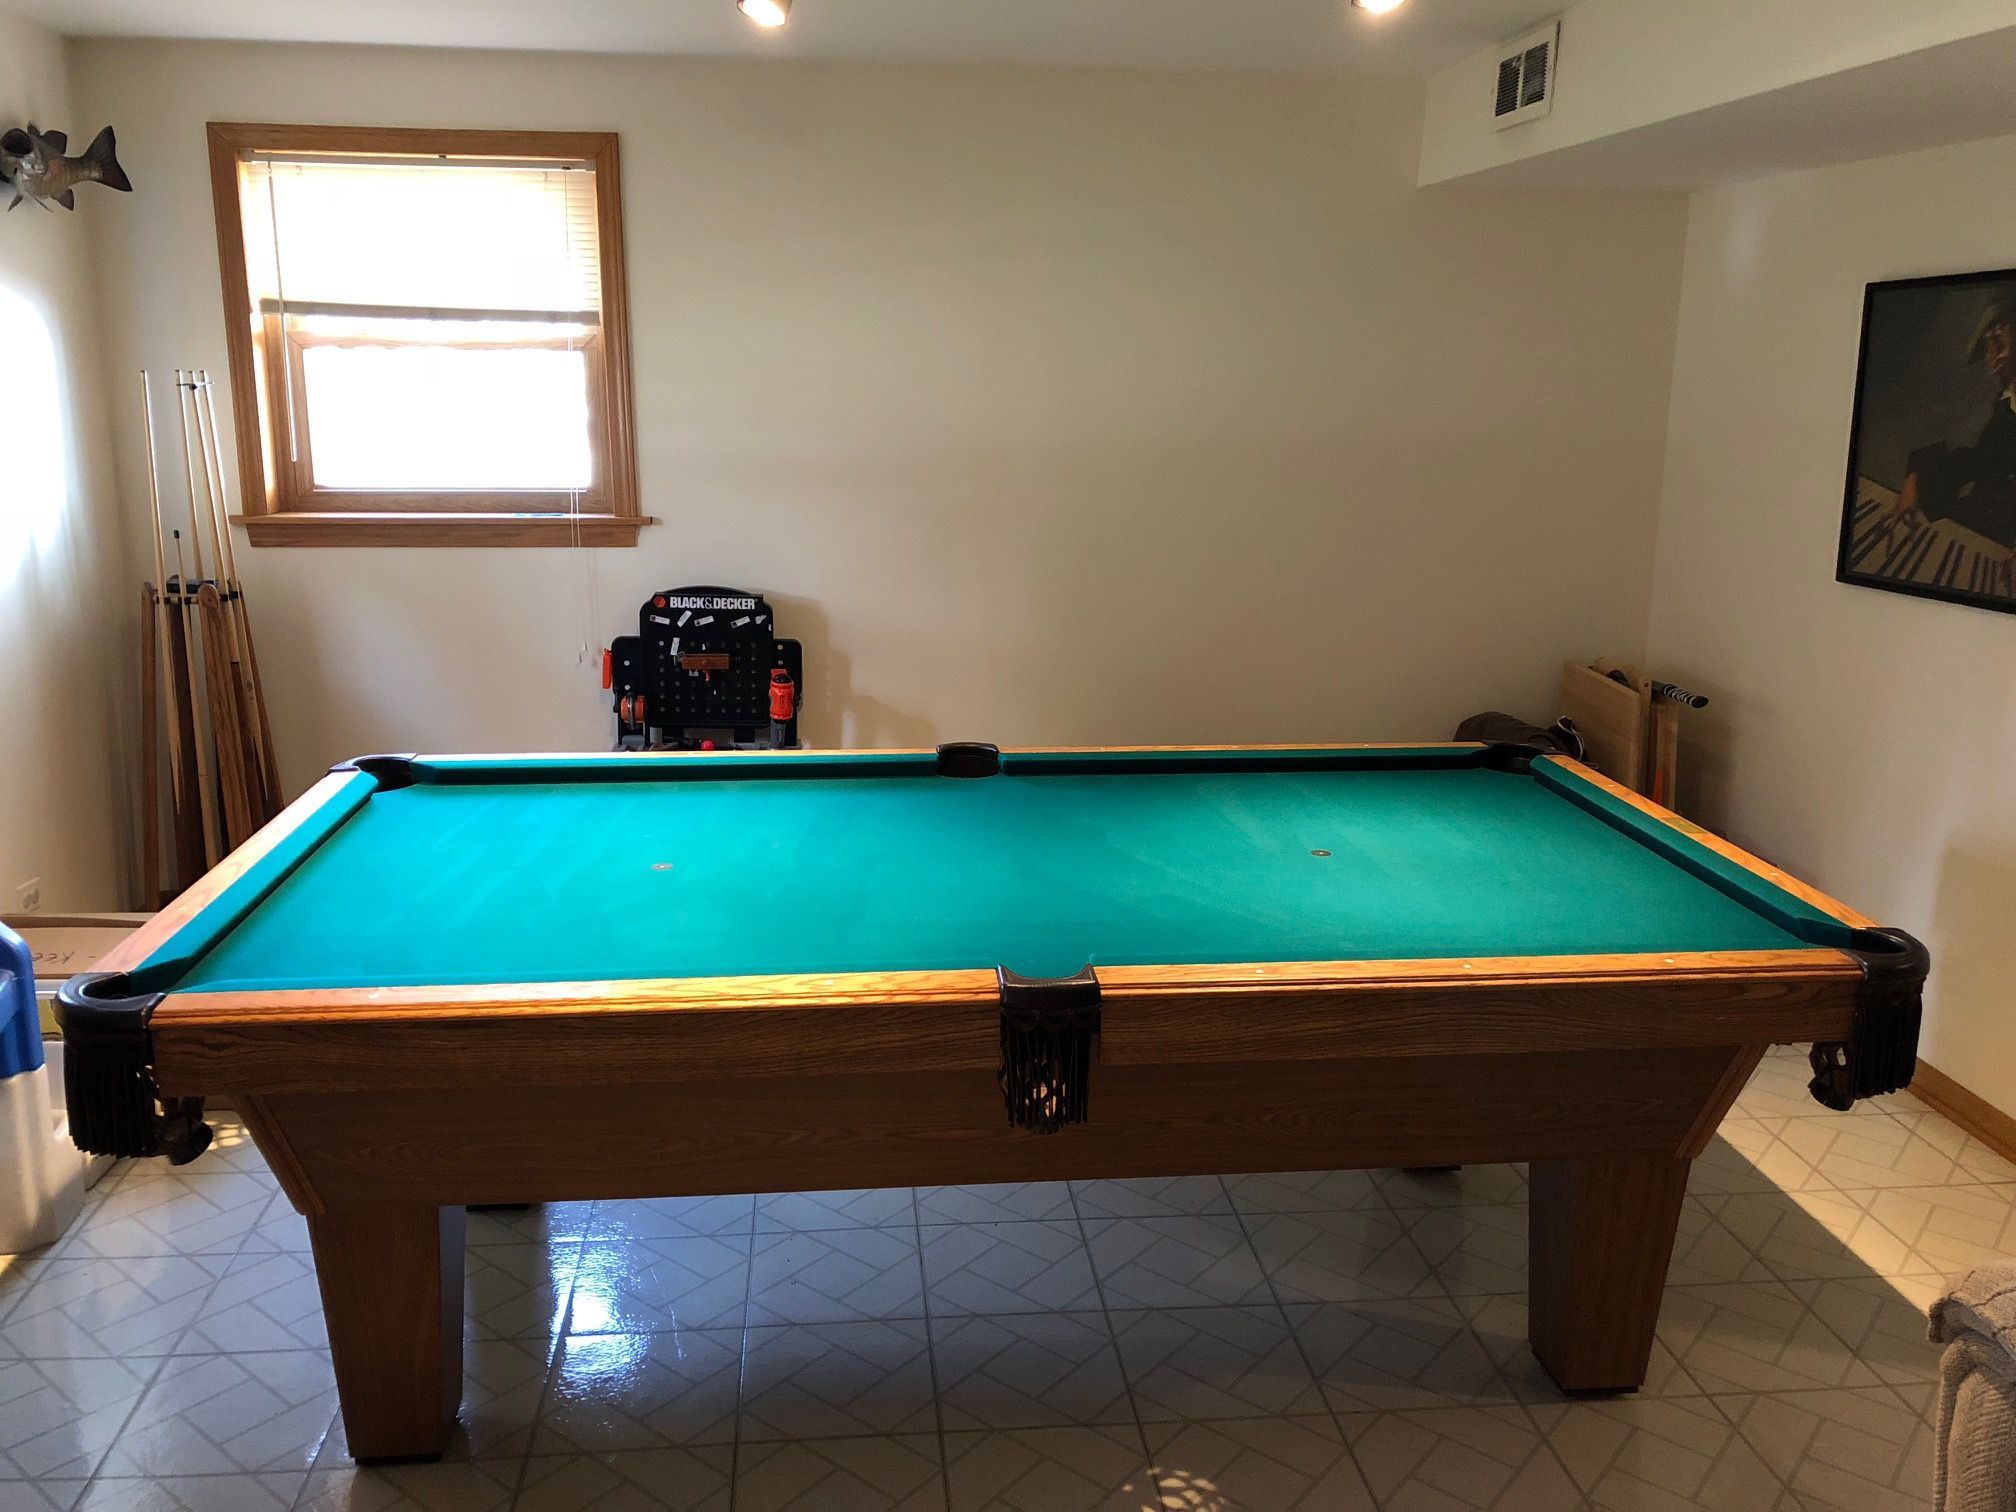 Good Pool Table Chicago   New Used Billiard Pool Tables Mover Refelt Recushion  Install Crating Buy Sell Pool Tables Chicago Illinois Il